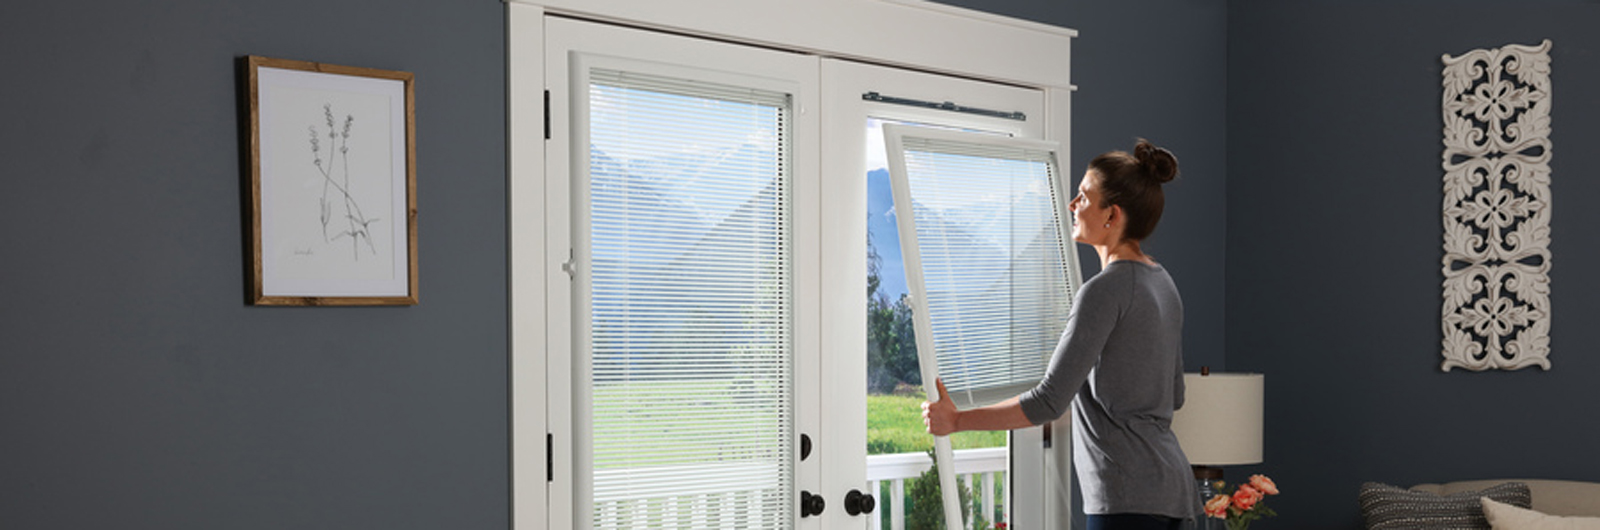 odl light touch enclosed blinds - Blinds For Patio Doors